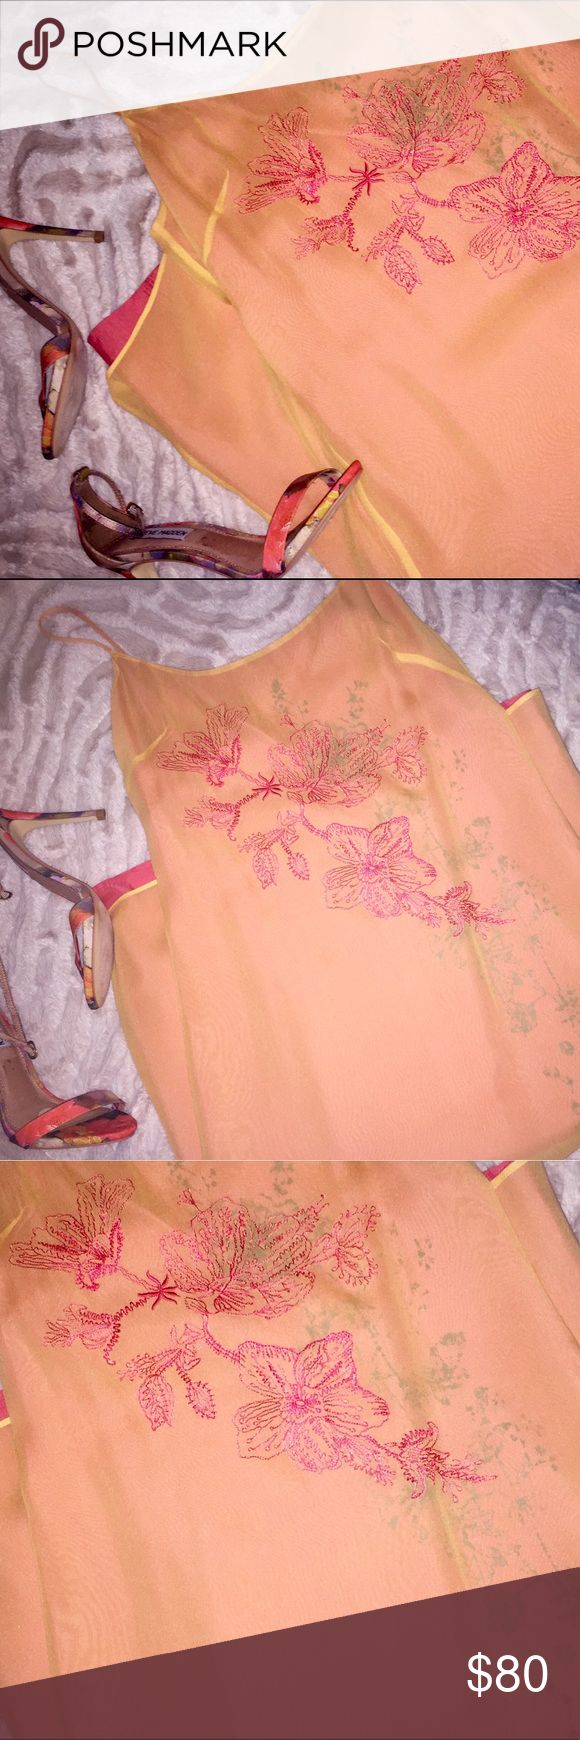 Laundry Cocktail Dress Beautiful orange cherry blossom camisole dress by Laundry. This is such a beautiful and unique piece, in amazing condition and would be appropriate for a formal event or for date night. Laundry By Shelli Segal Dresses Midi